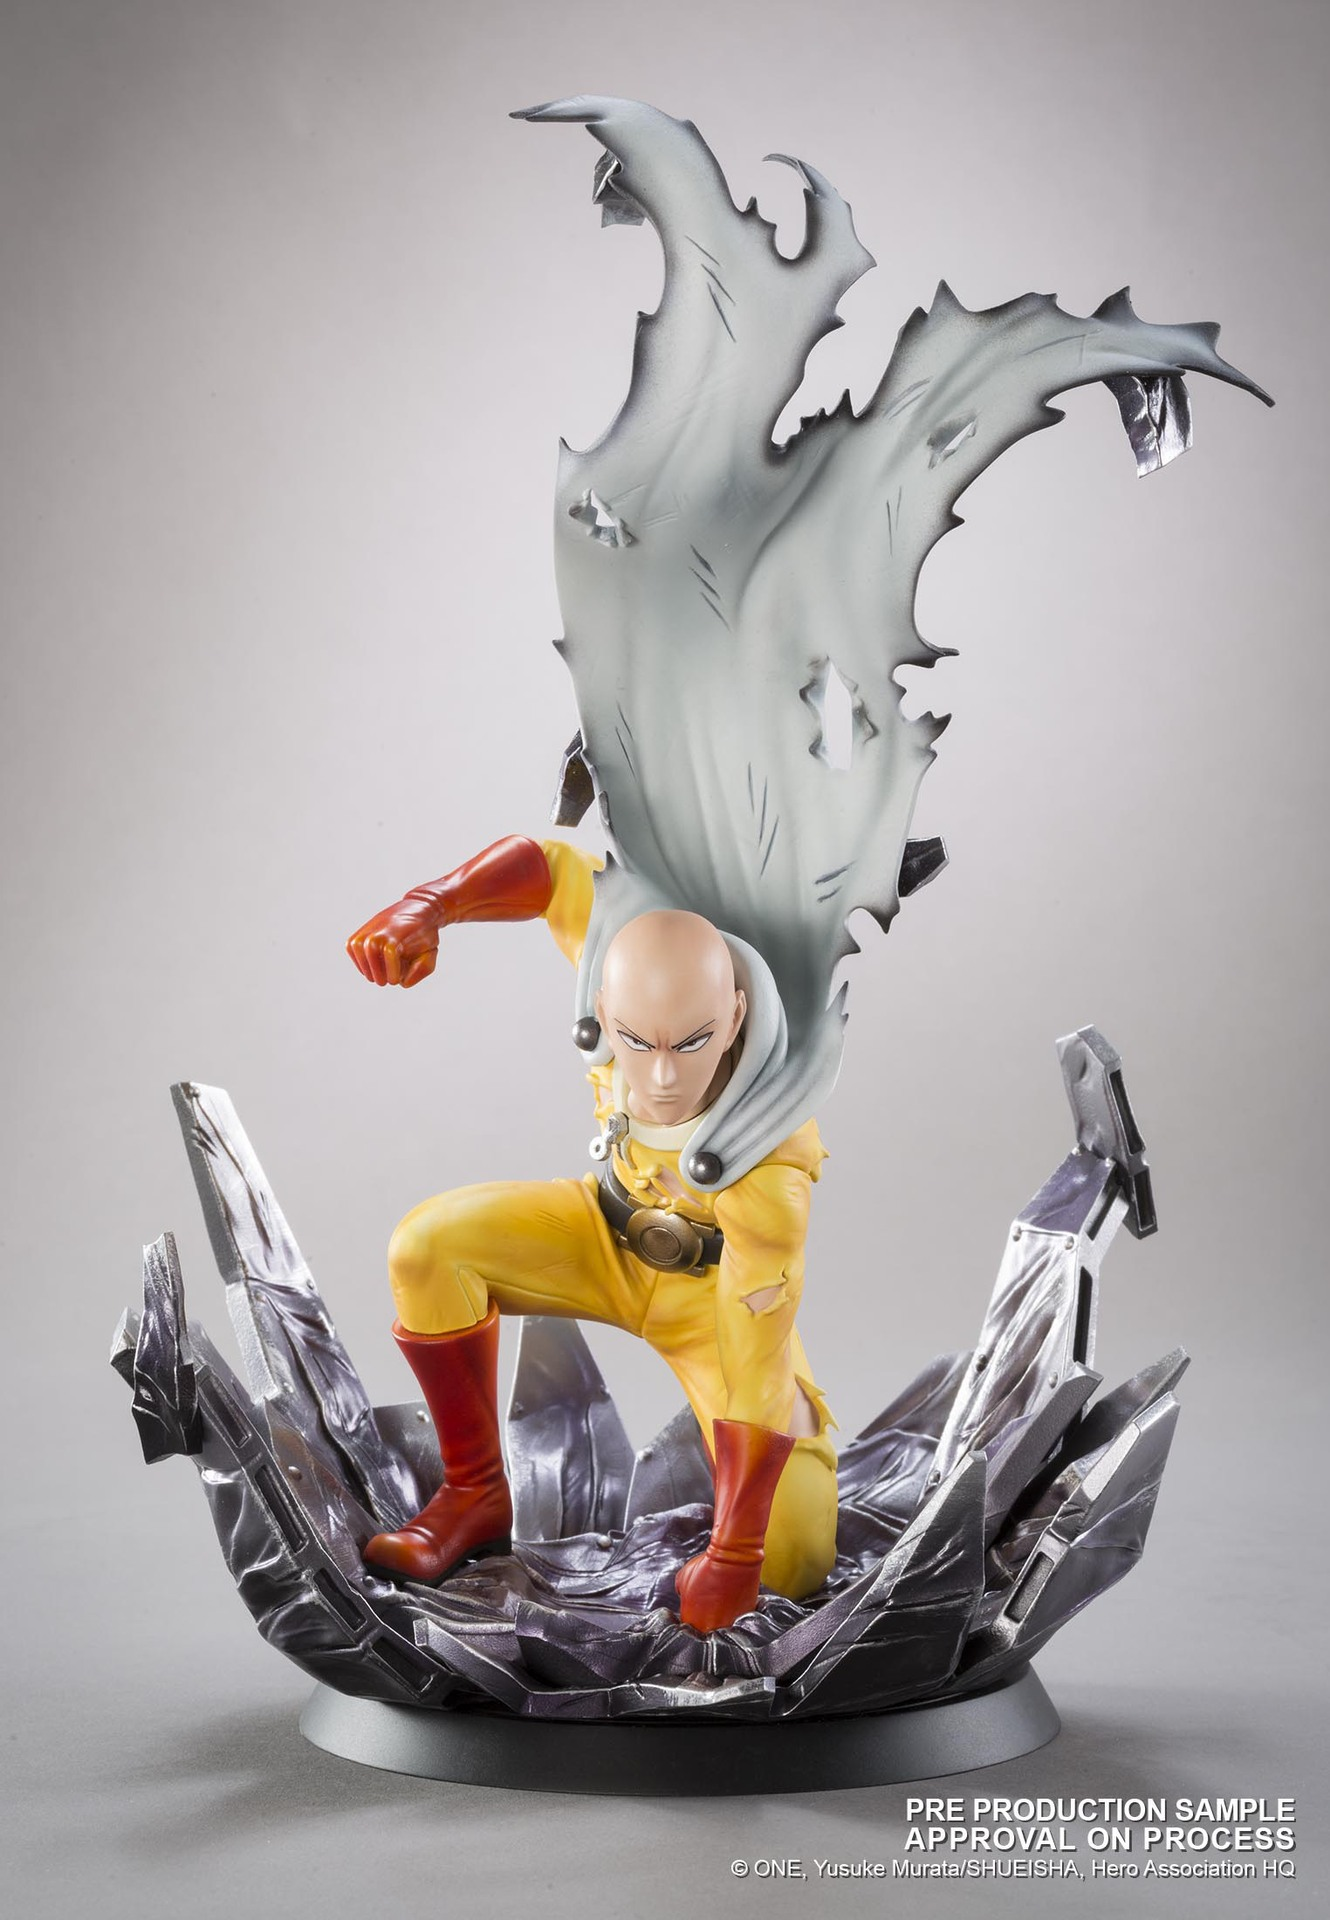 Hot-selling 1pcs 24CM pvc Japanese anime figure Tsume T ONE PUNCH-MAN Saitama action figure collectible model toys brinquedos 3pcs lot cute one punch man figure saitama sensei figure keyring keychain kids toys model doll toy gift